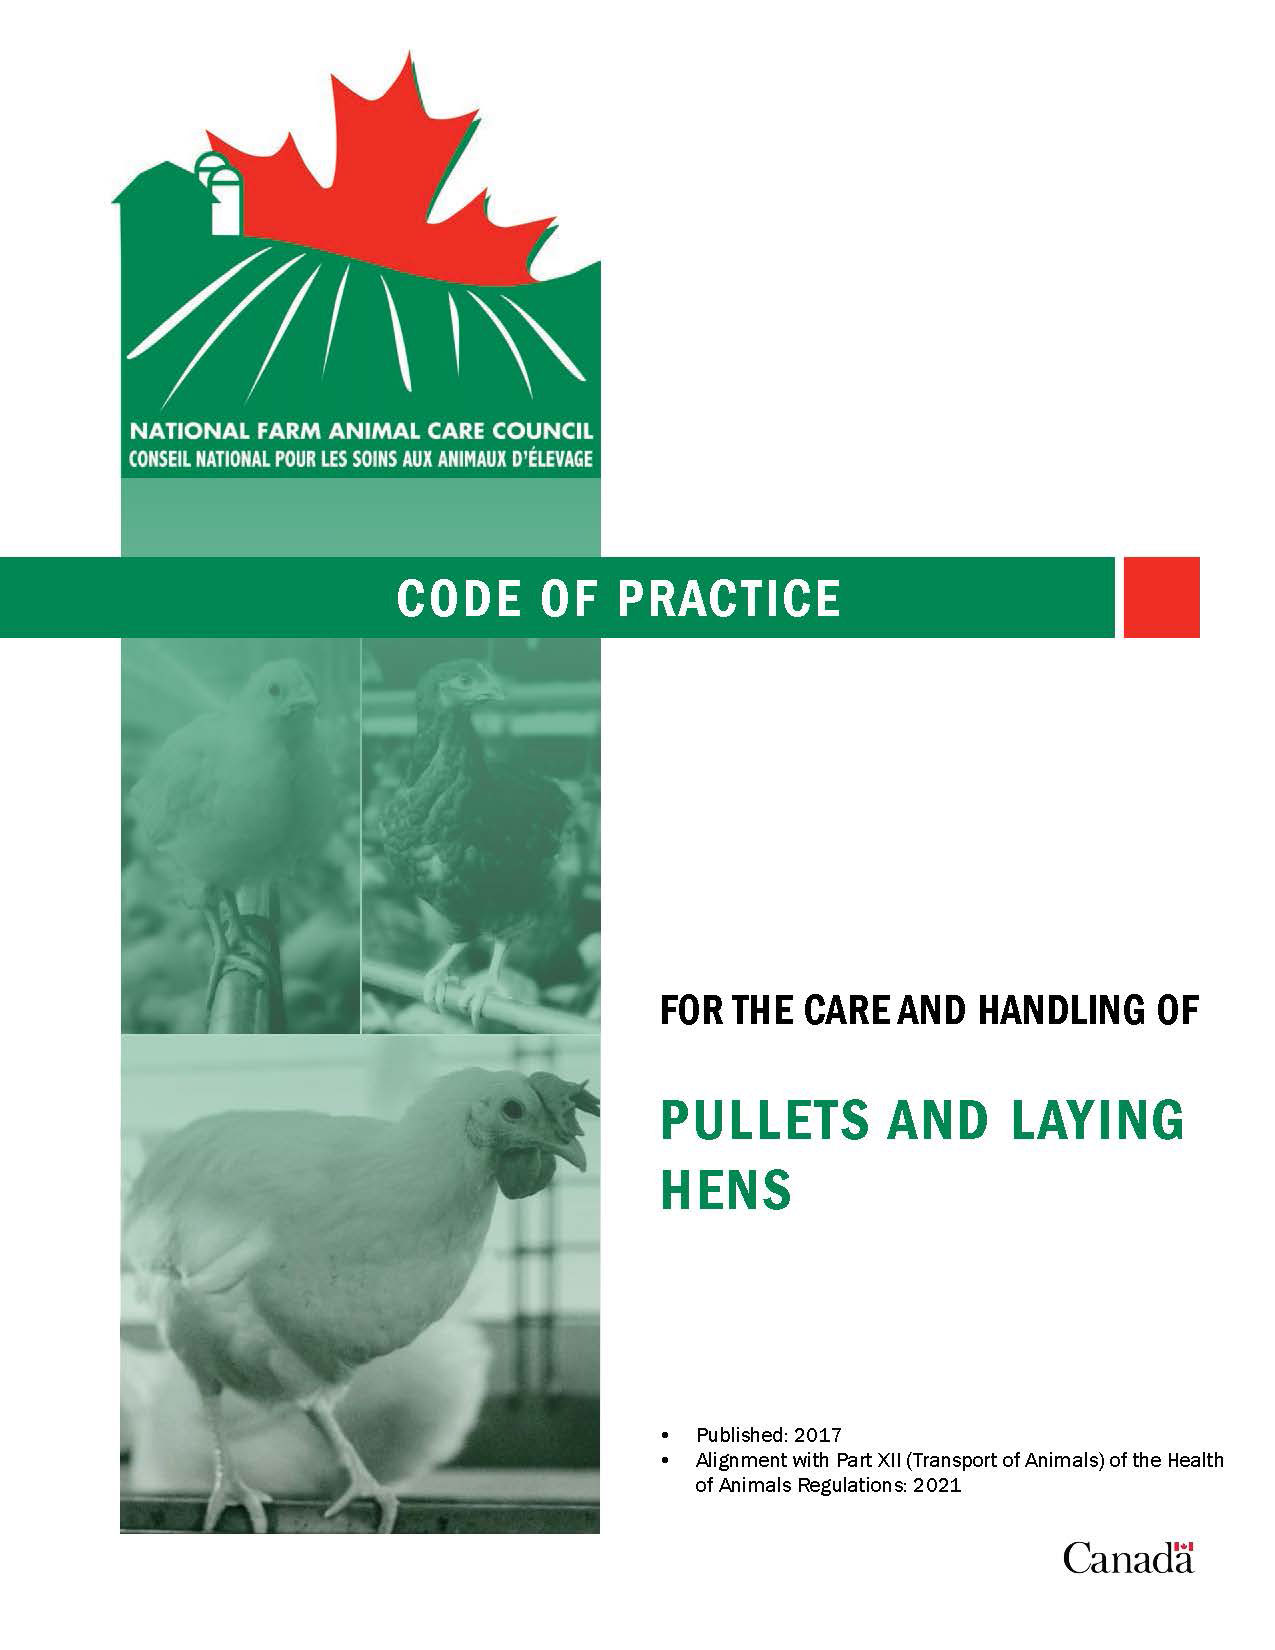 Poultry (Layers) - Code of Practice for the Care and